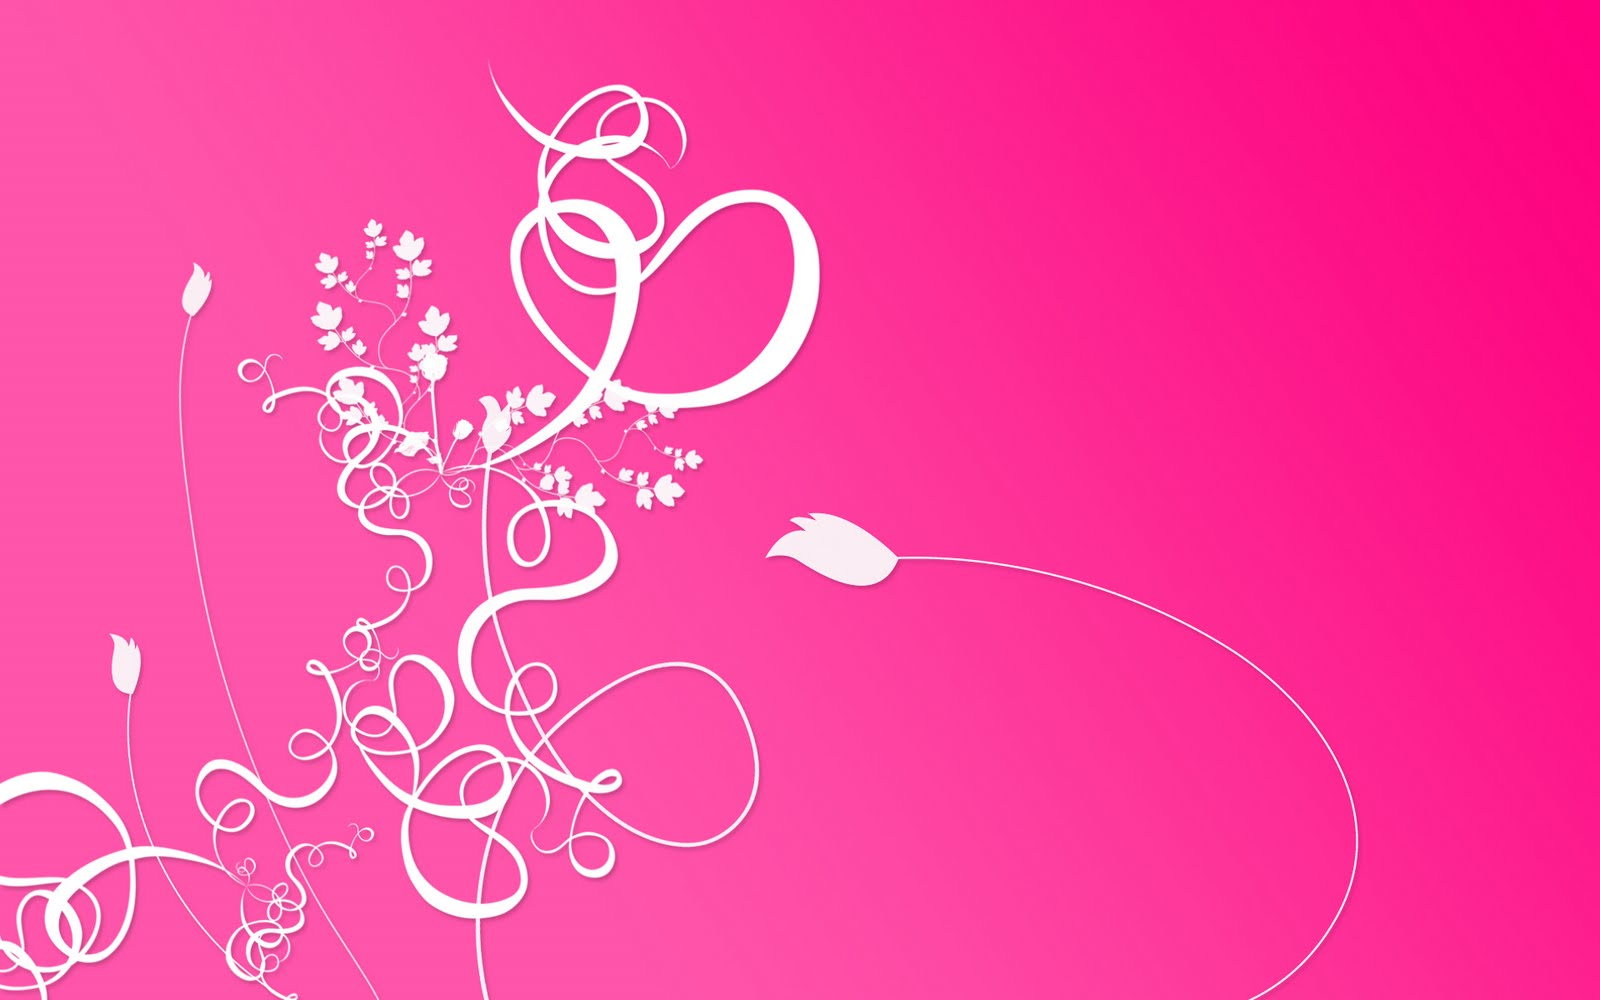 Wallpapers HD Pink